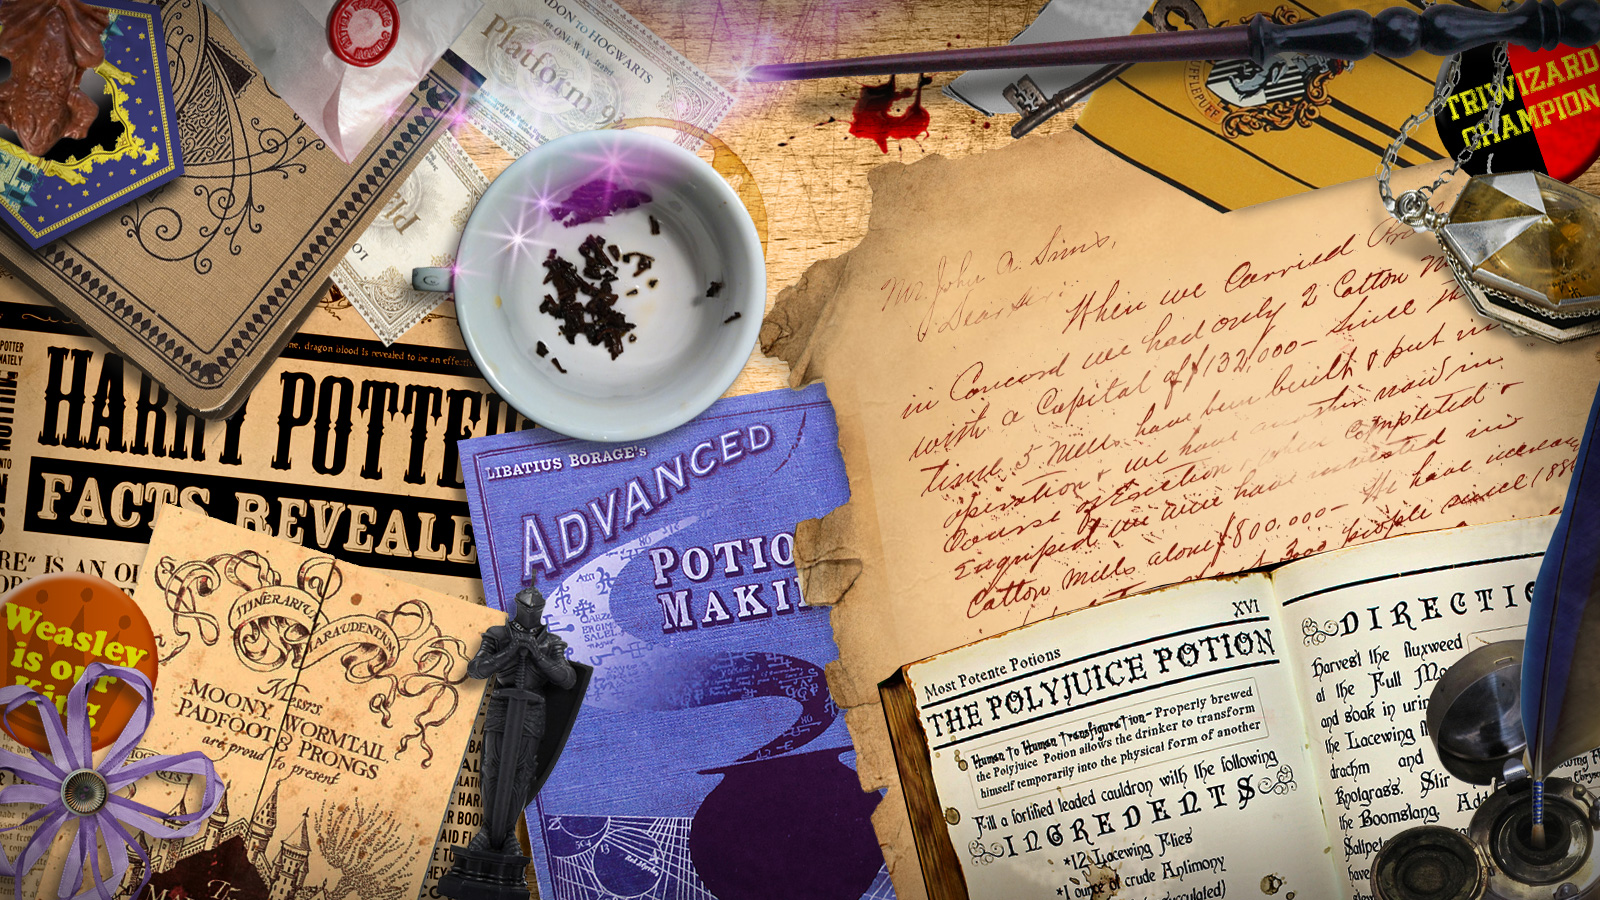 Harry Potter Art Wallpaper: Harry Potter Desk Wallpaper And Gmail Theme By Bamberos On